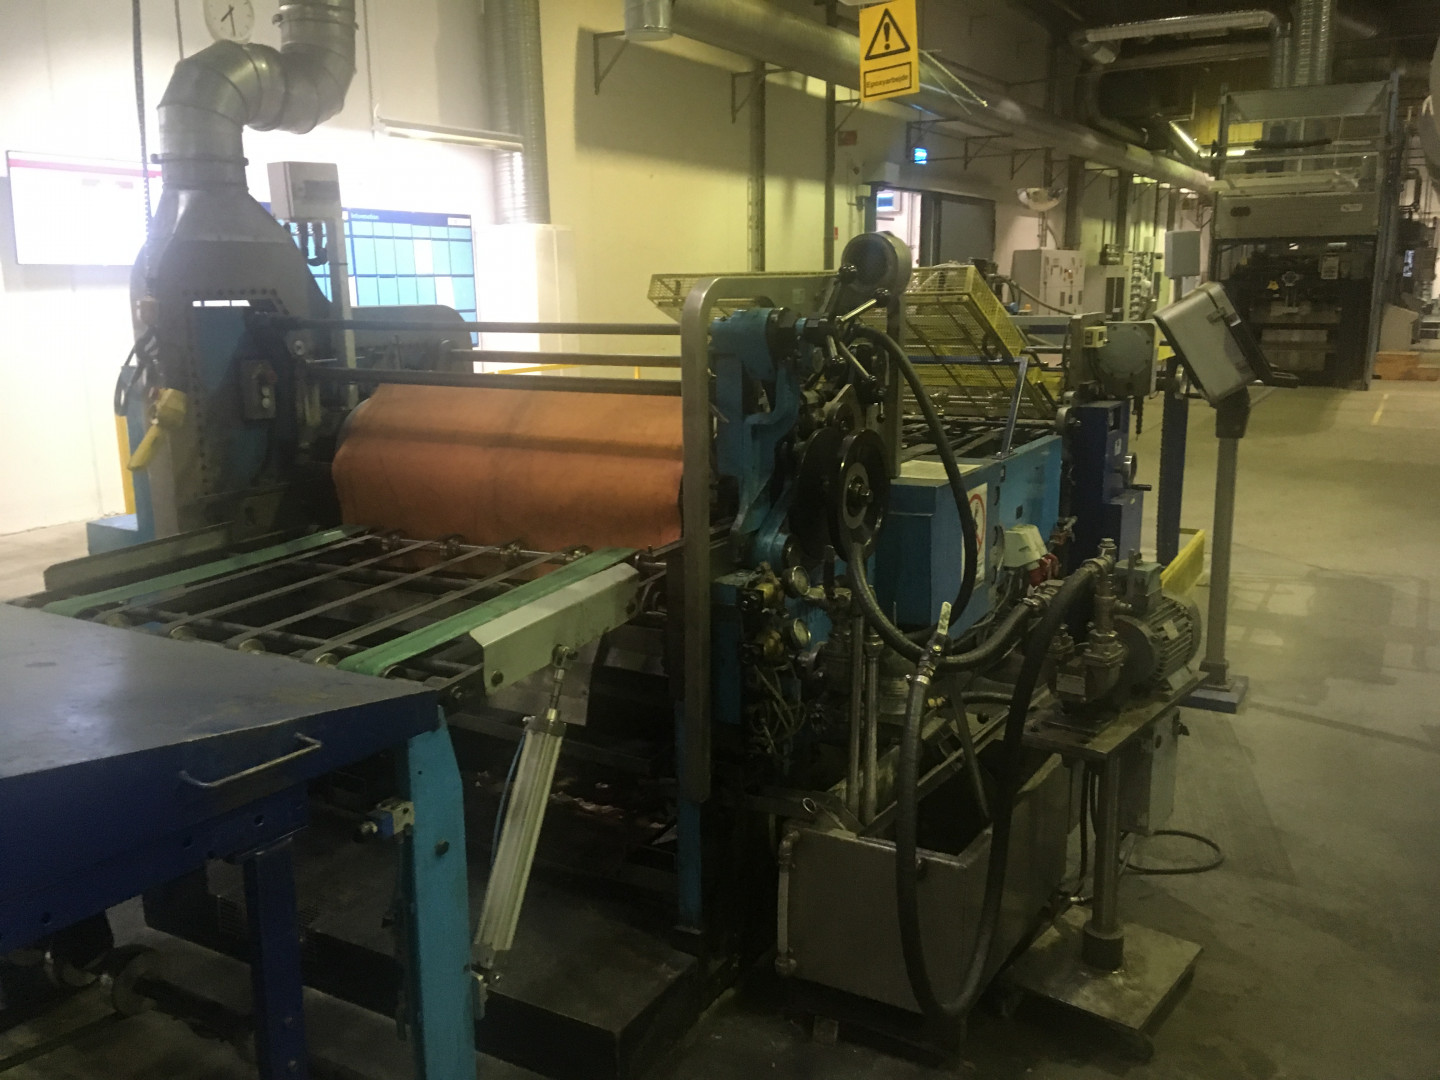 LTG-Mailander 770 / 469 sheet feeder - varnish coating machine